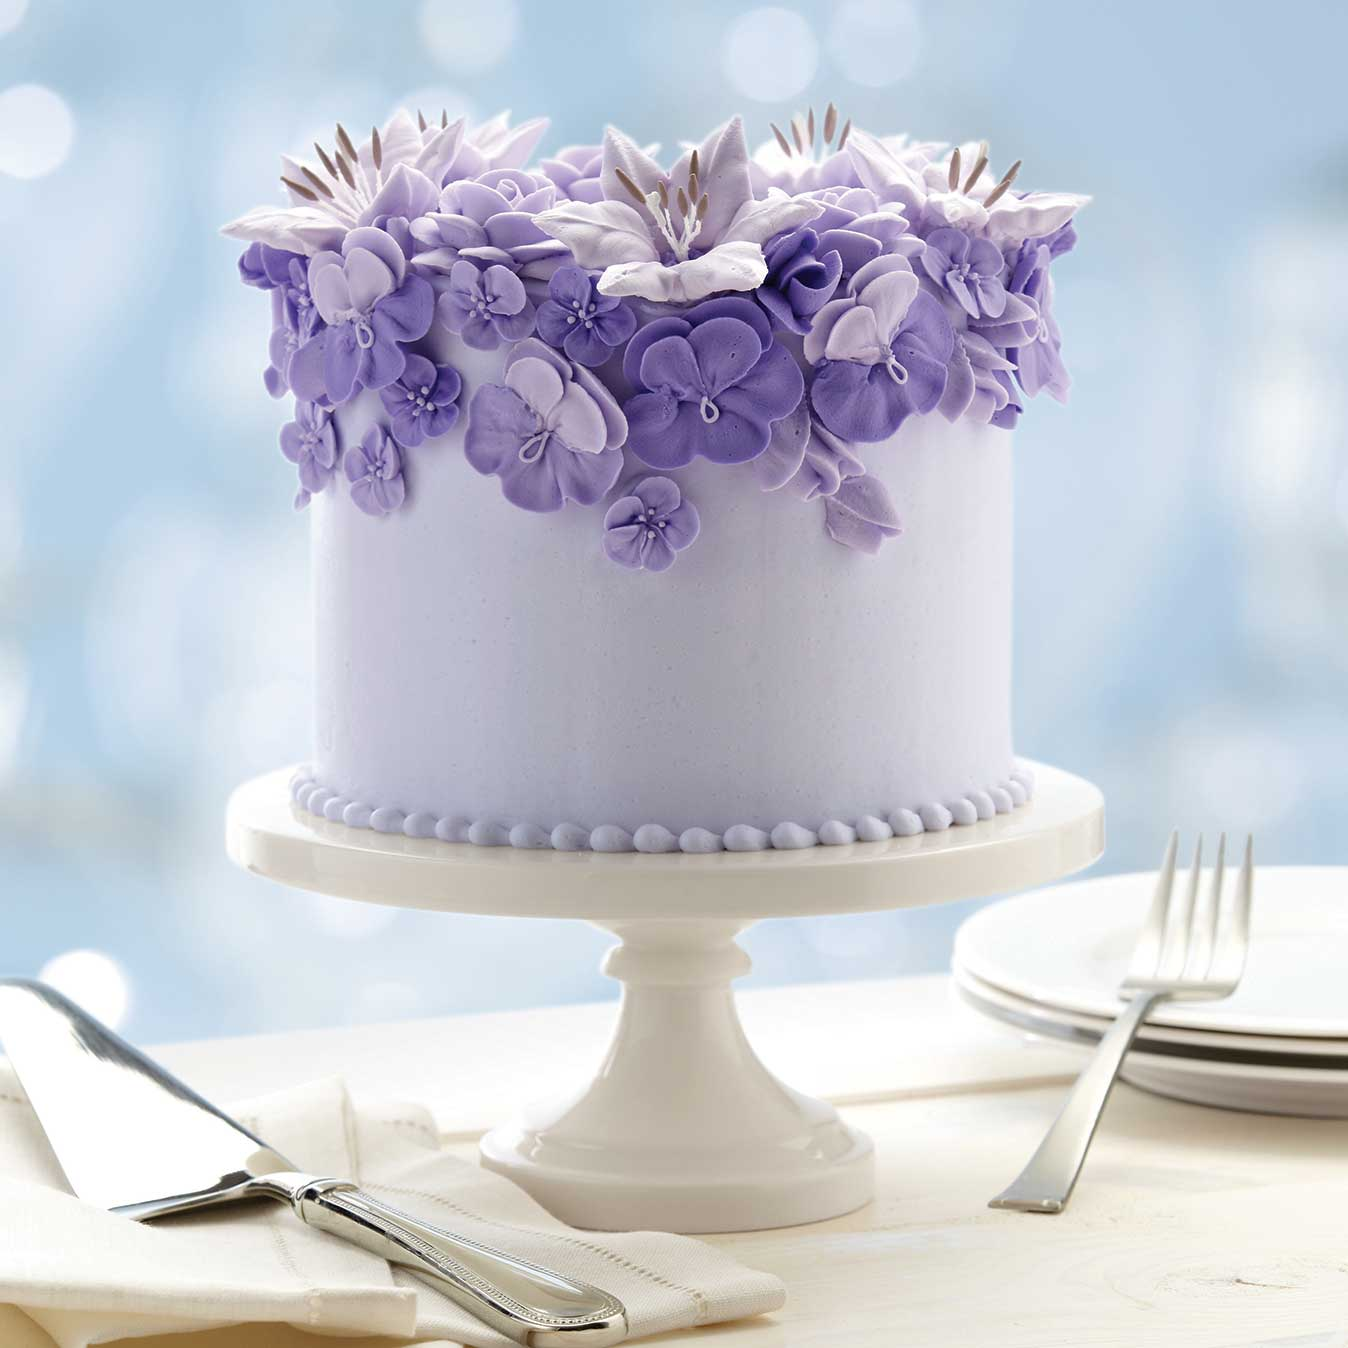 A round layered cake covered in purple buttercream and with piped, royal icing flowers in various shades of violet and lavender on a white cake stand.